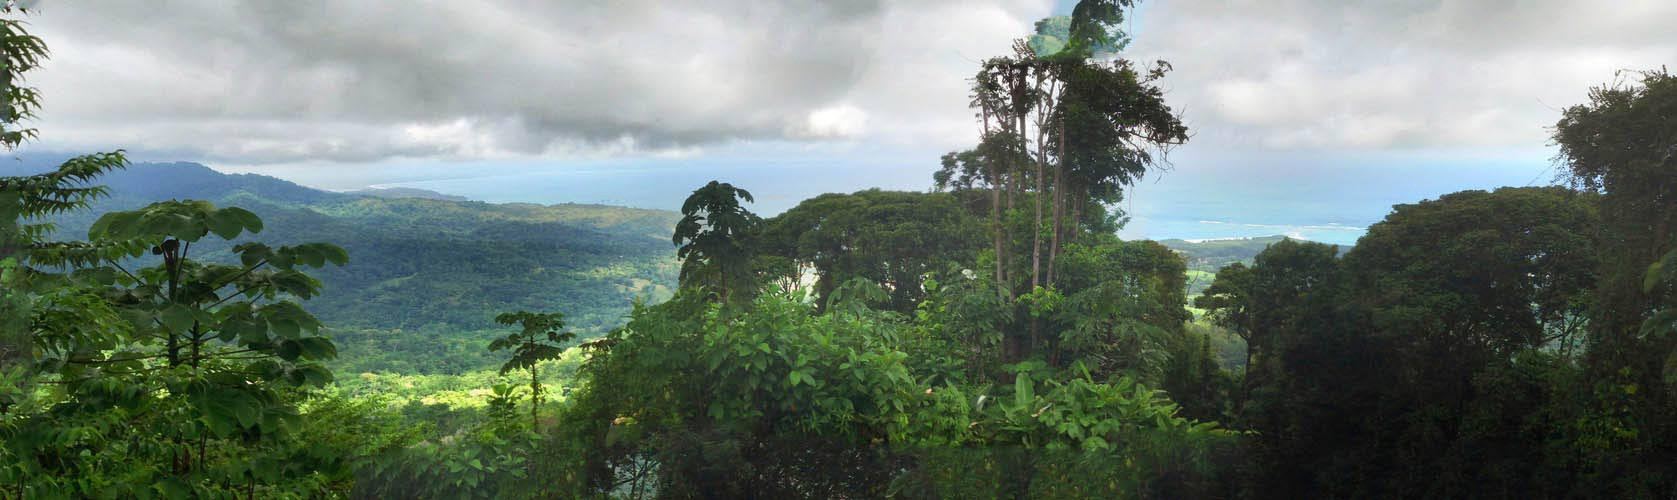 6 Things to do in Dominical